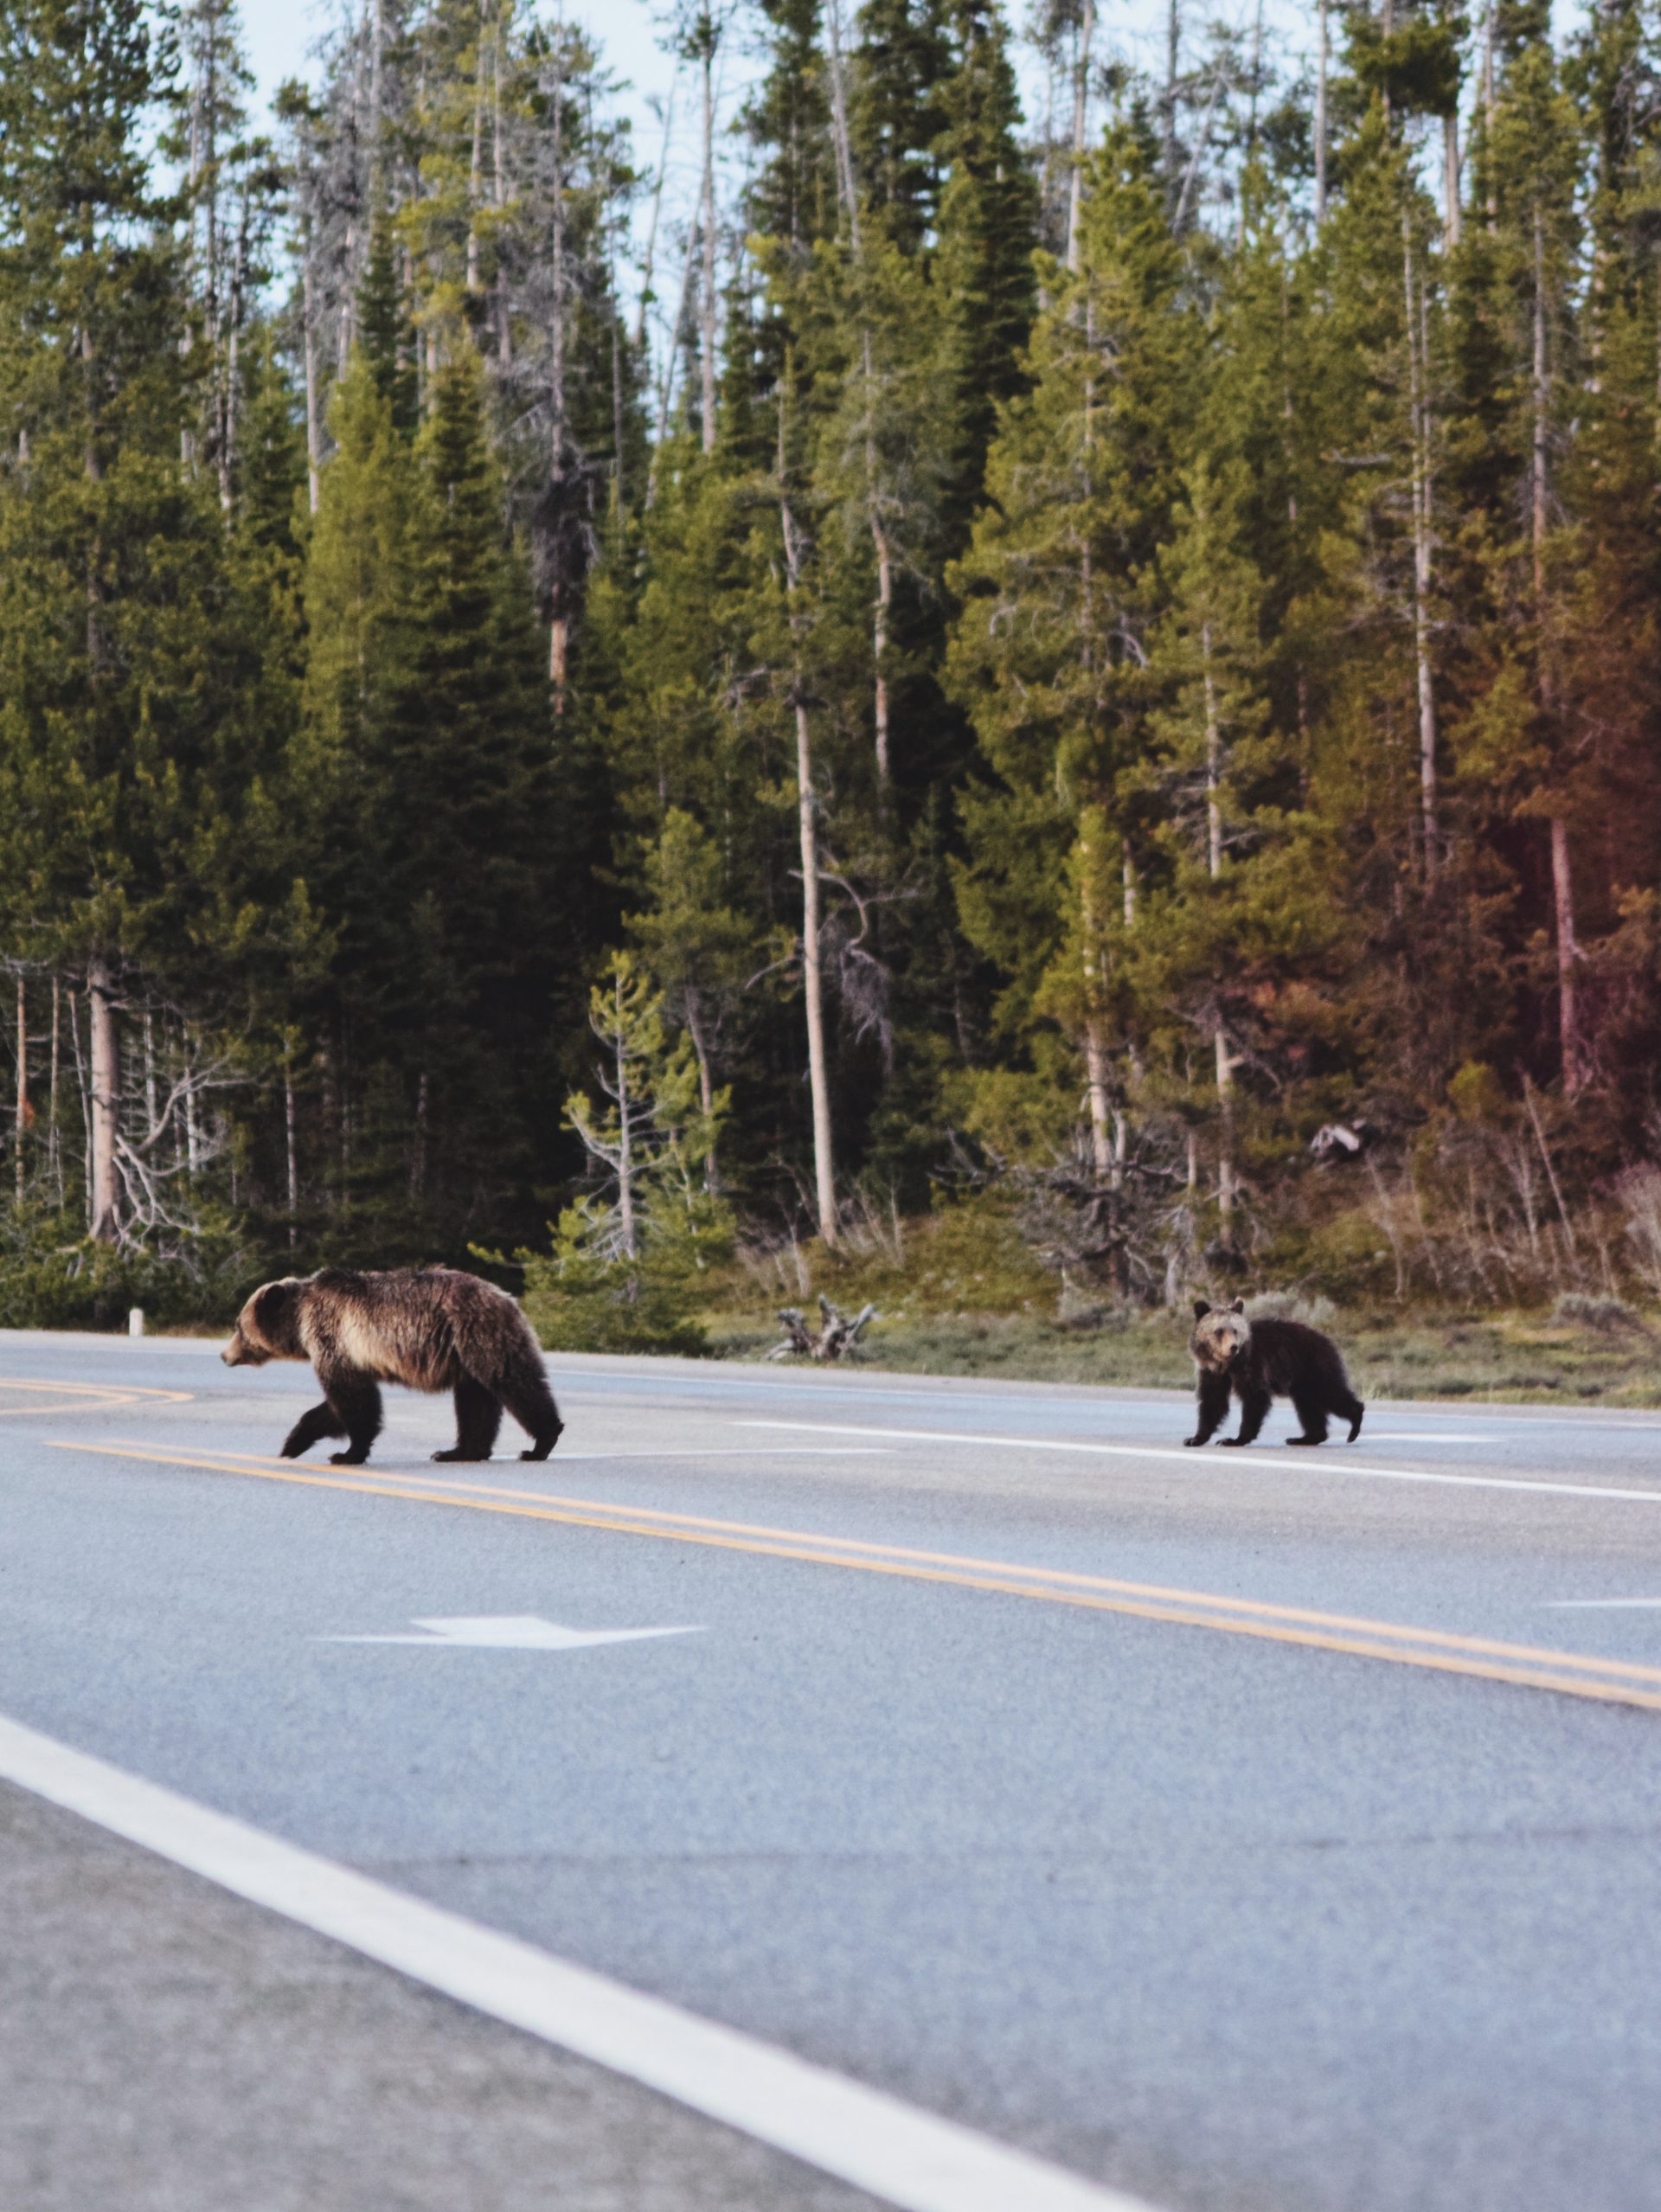 A bear and her cub crossing the highway in a pine forest